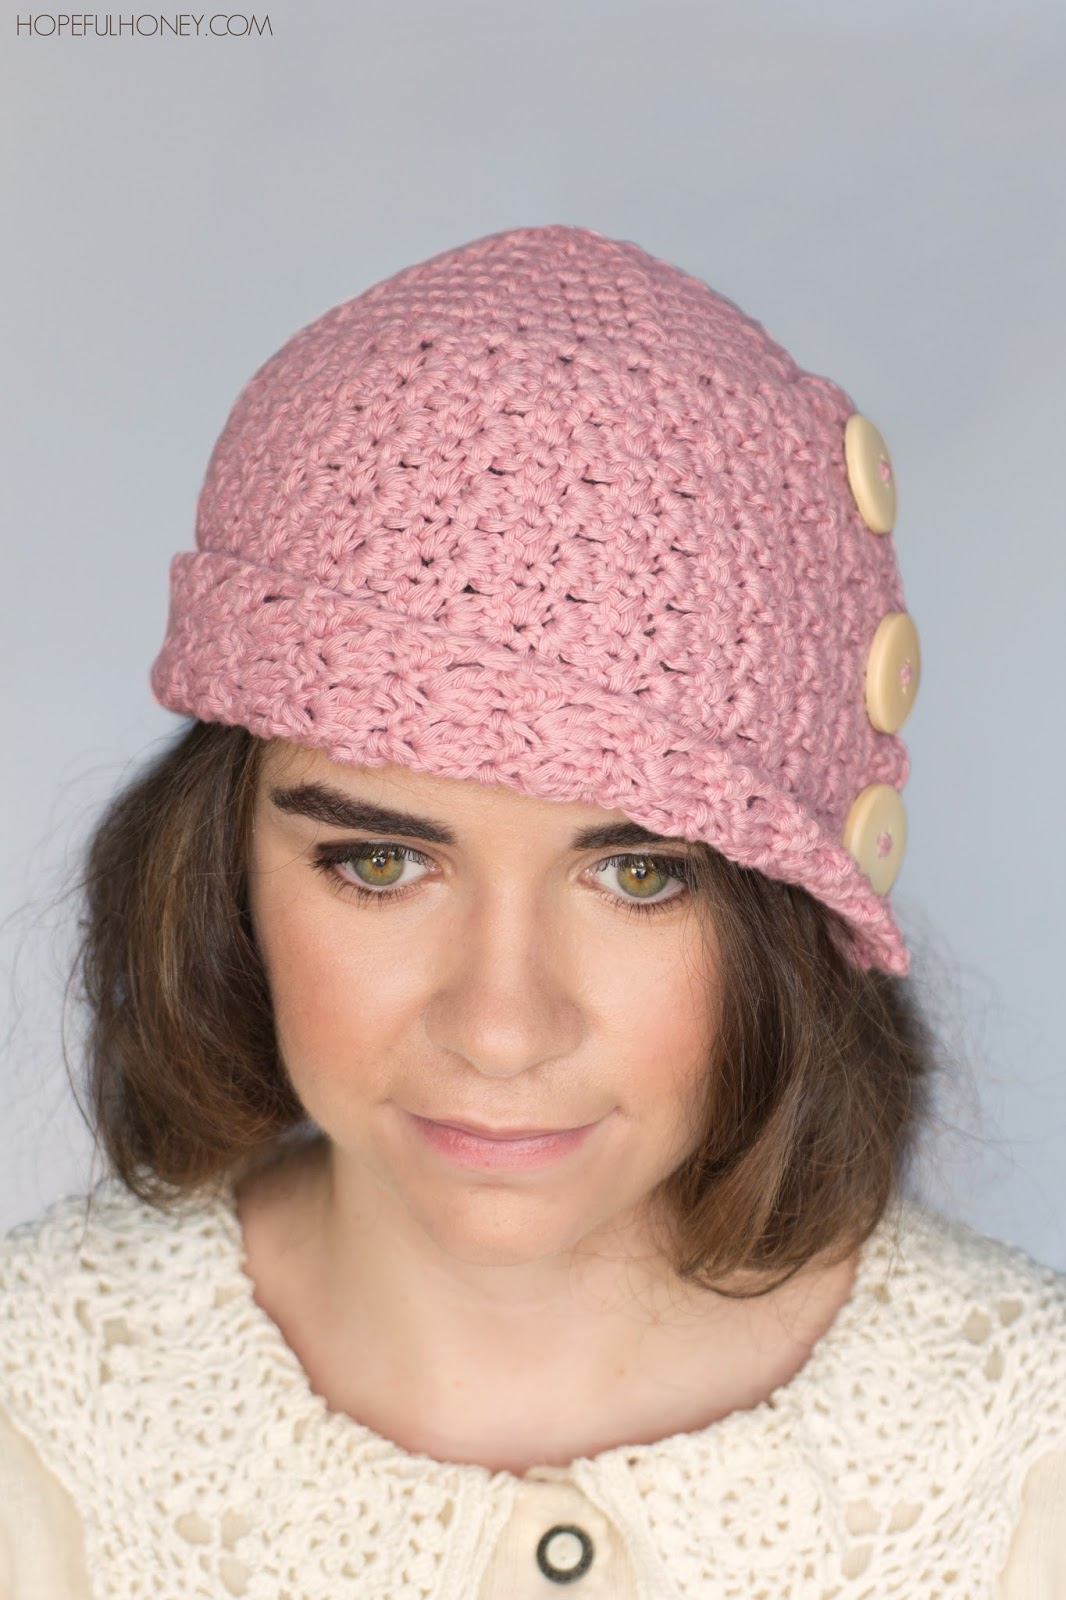 Crochet Hat Pattern Cloche : Hopeful Honey Craft, Crochet, Create: 1920s Rosebud ...